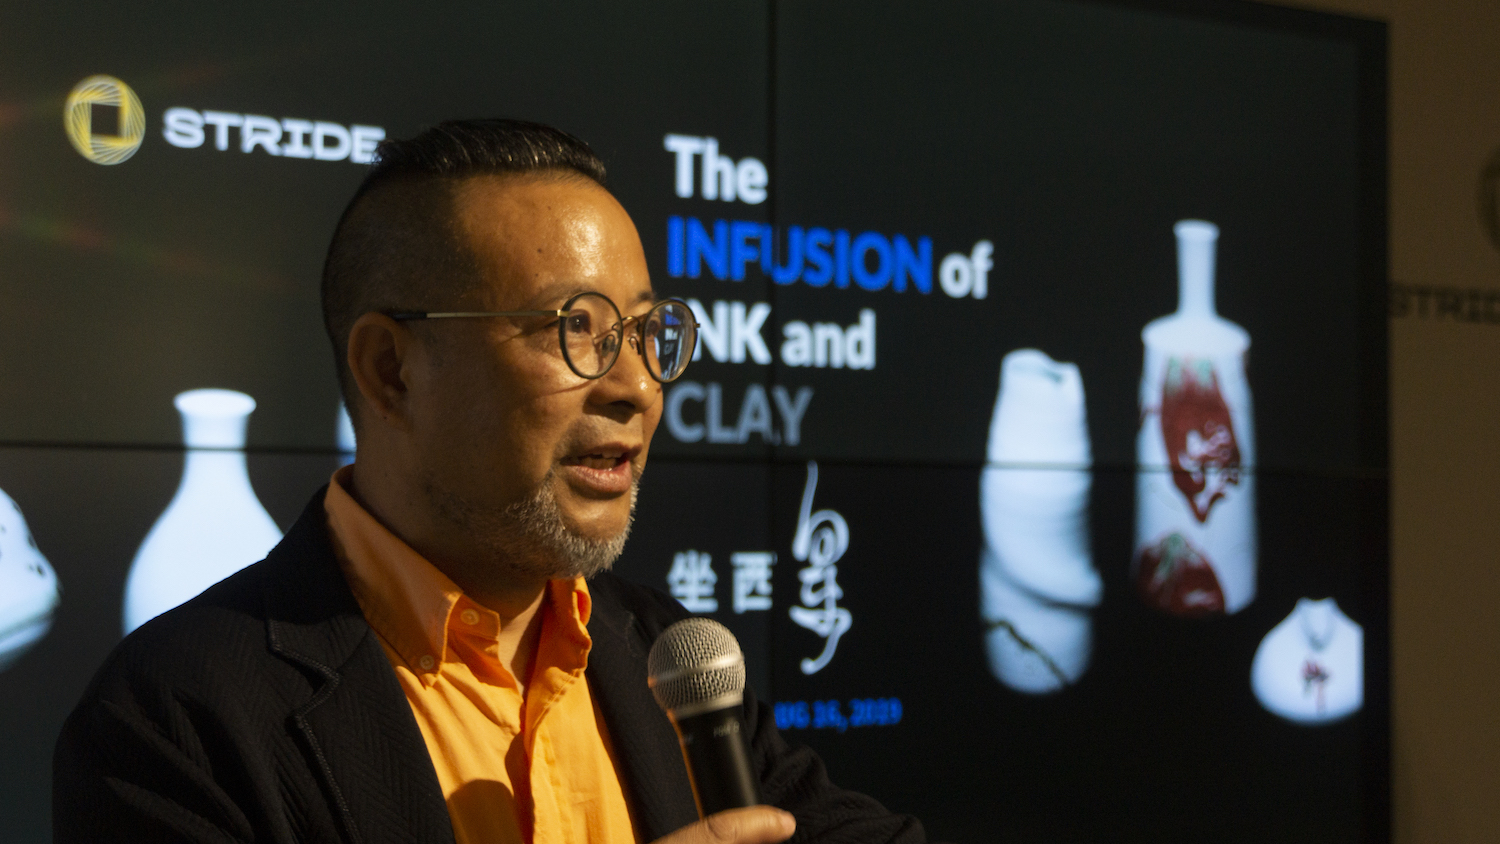 Stride Arts Opens Xiangdong Chen's 'The Infusion of Ink and Clay' Solo Show